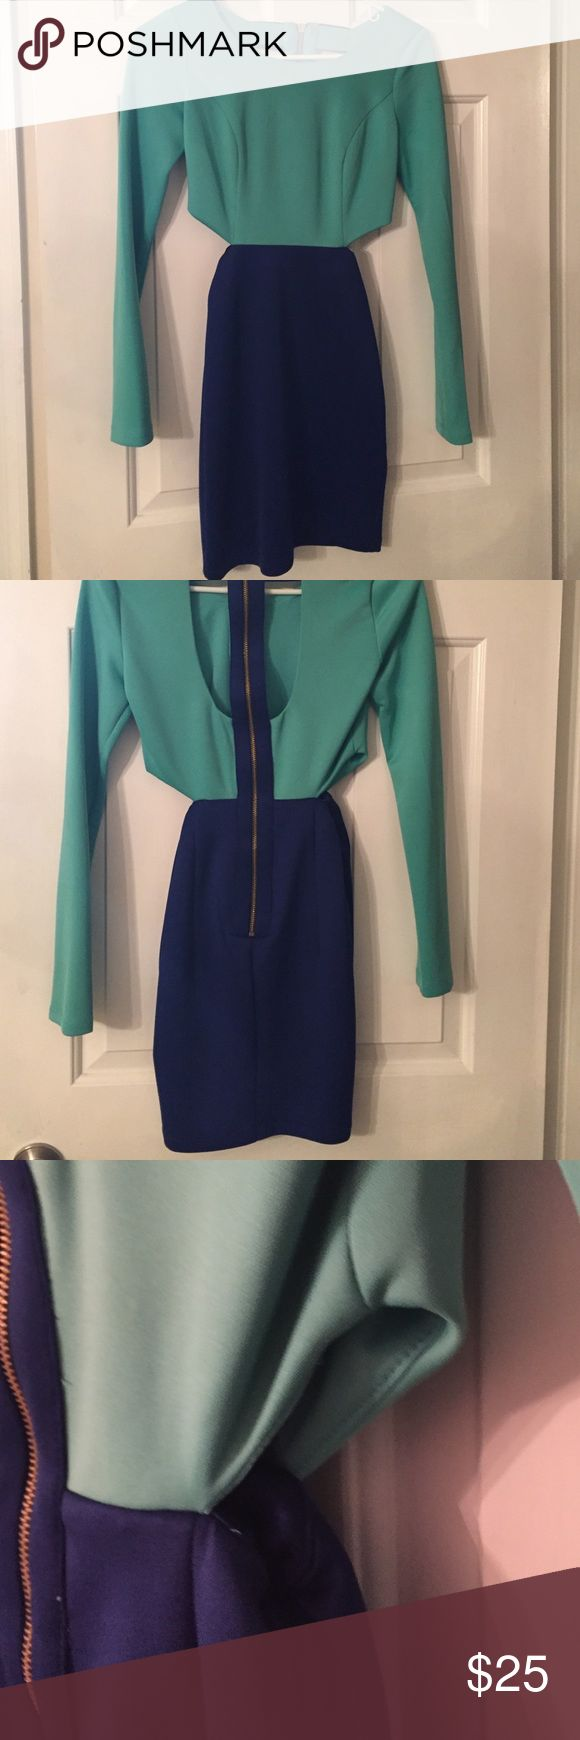 GBX X Small Cut out Dress GBS Xsmall Aqua, and blue dress with gold hardware, and cut out designs on the side. Really cute for a night out. Smoke free/no pets home. GBX Dresses Mini